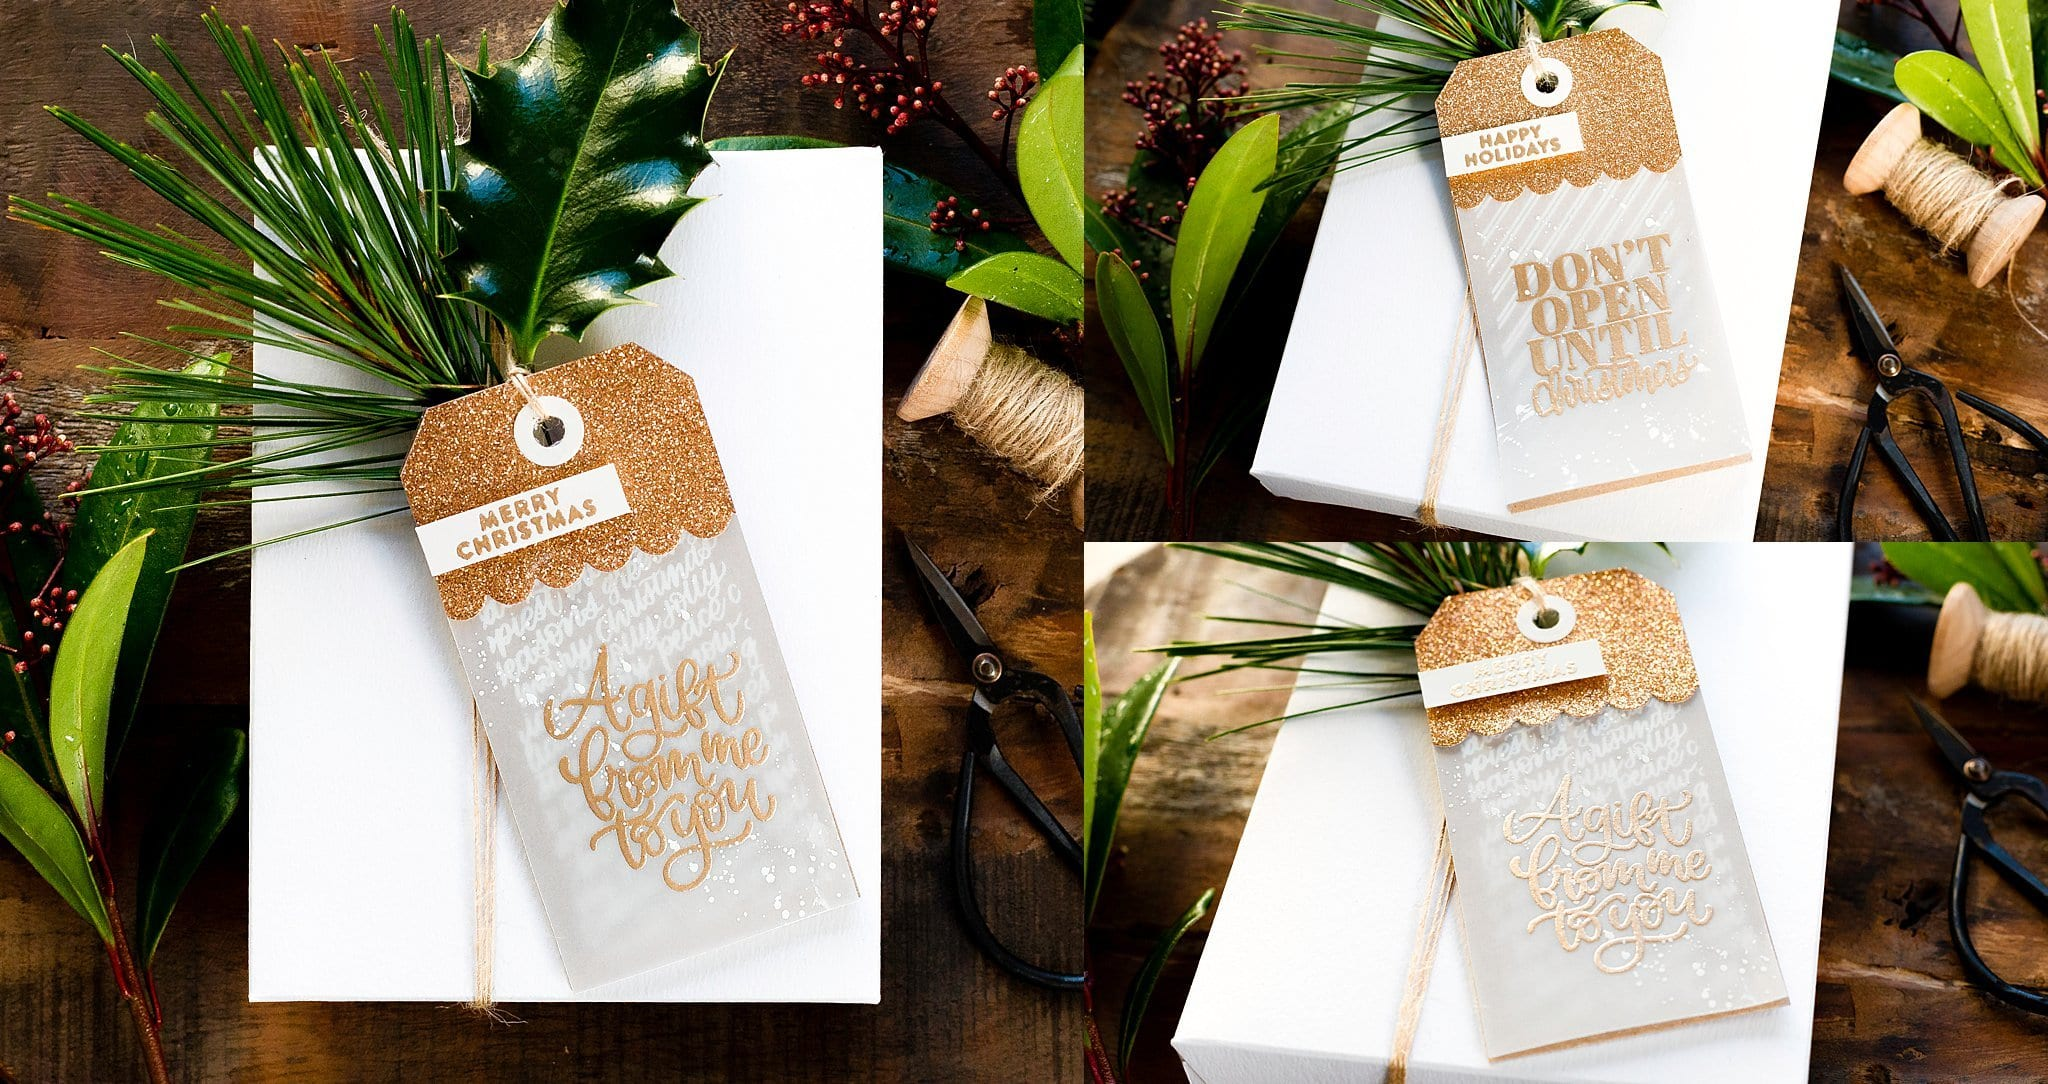 Video tutorial creating a couple of classic Christmas gift tags to take your Holiday wrapping up a notch! Handmade gift tags by Debby Hughes using supplies from Simon Says Stamp #handmadecards #cardmaking #cardmakingideas #cardmakingtechniques  #cardmakingtutorials #handmadecardideas #handmadechristmas #christmascrafts #navidad #noel #merrychristmas #diychristmas #christmascards #christmascardideas #simonsaysstamp